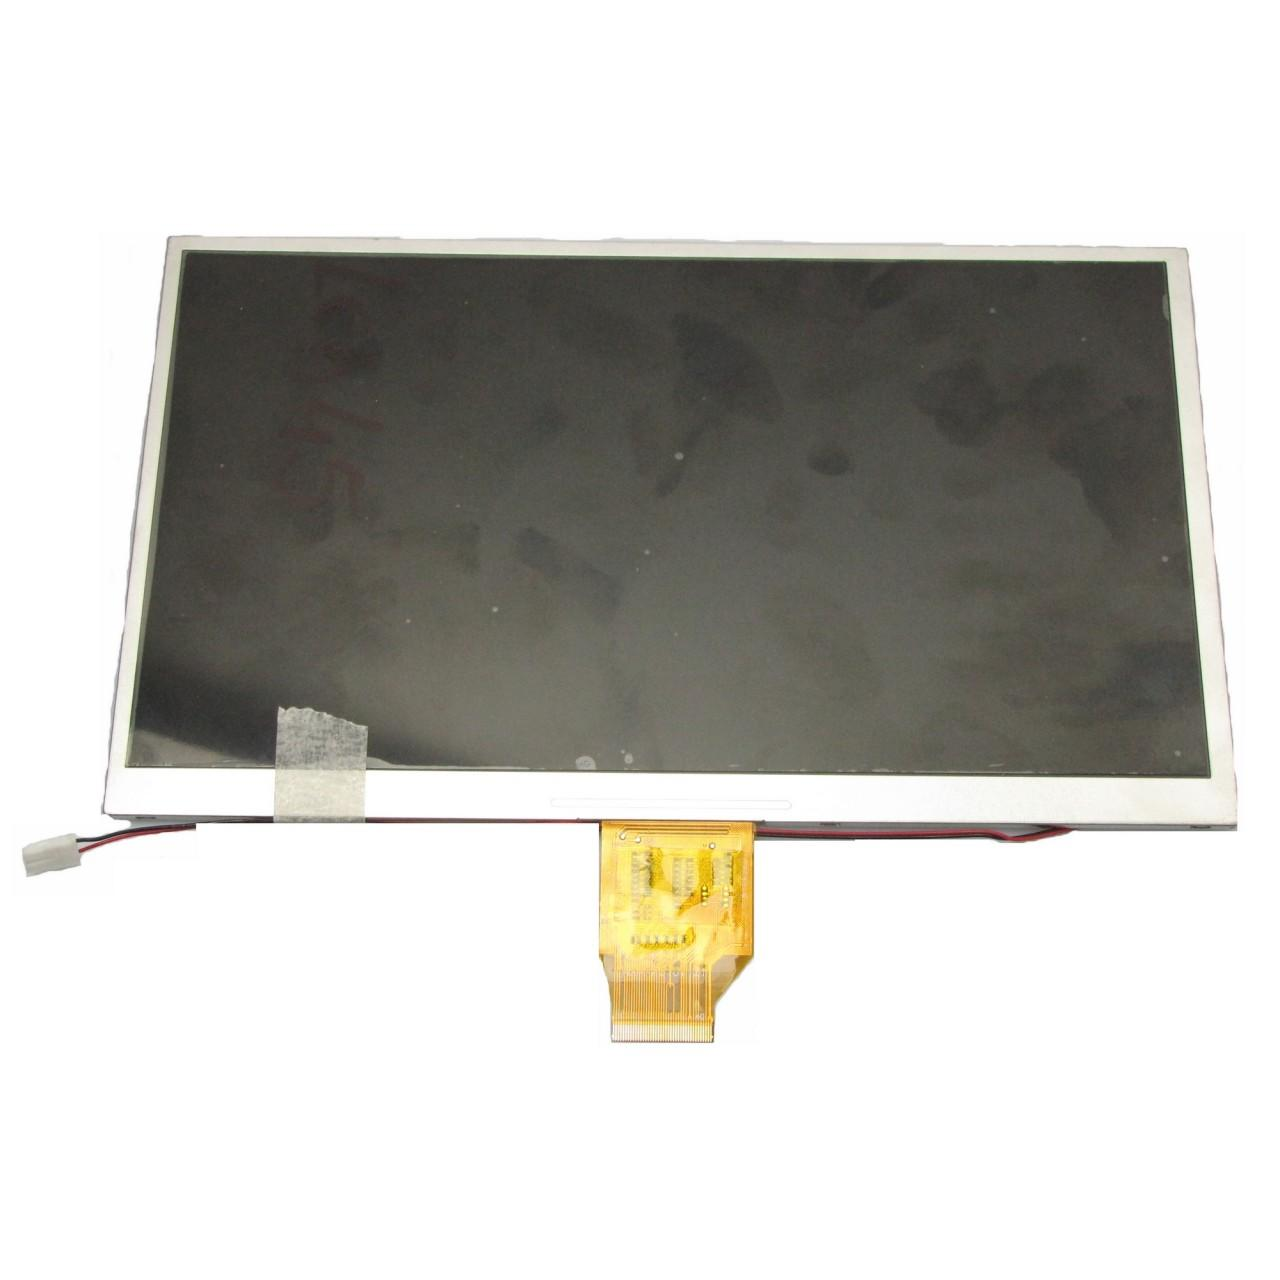 Display Utok 1000Q Lite Ecran TN LCD Tableta ORIGINAL imagine powerlaptop.ro 2021